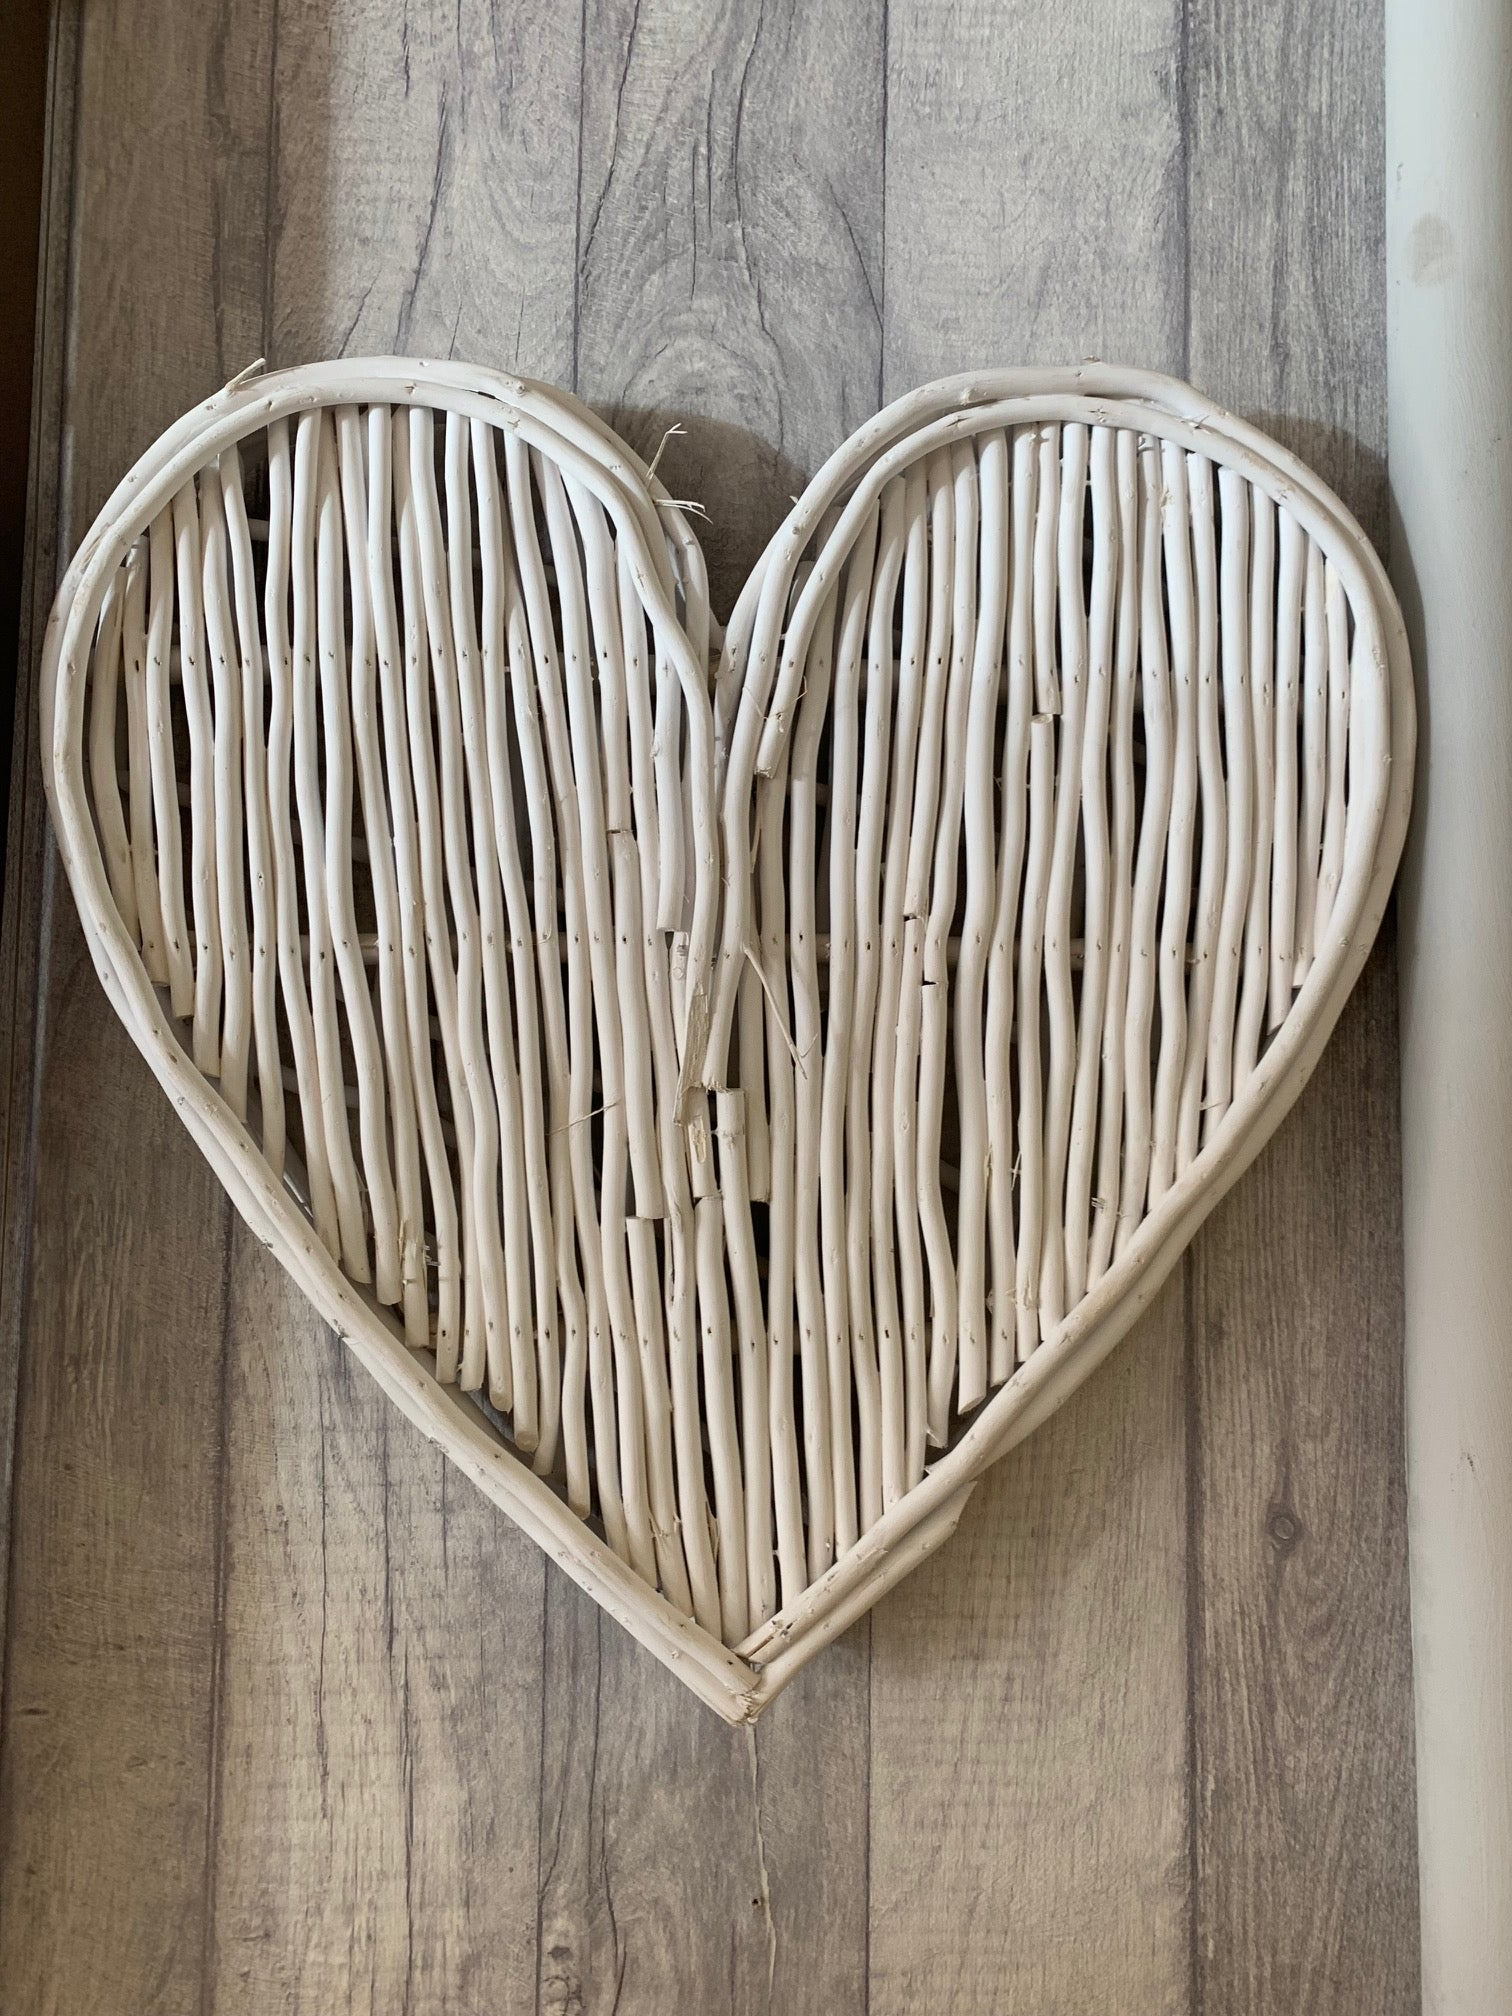 Small white willow heart